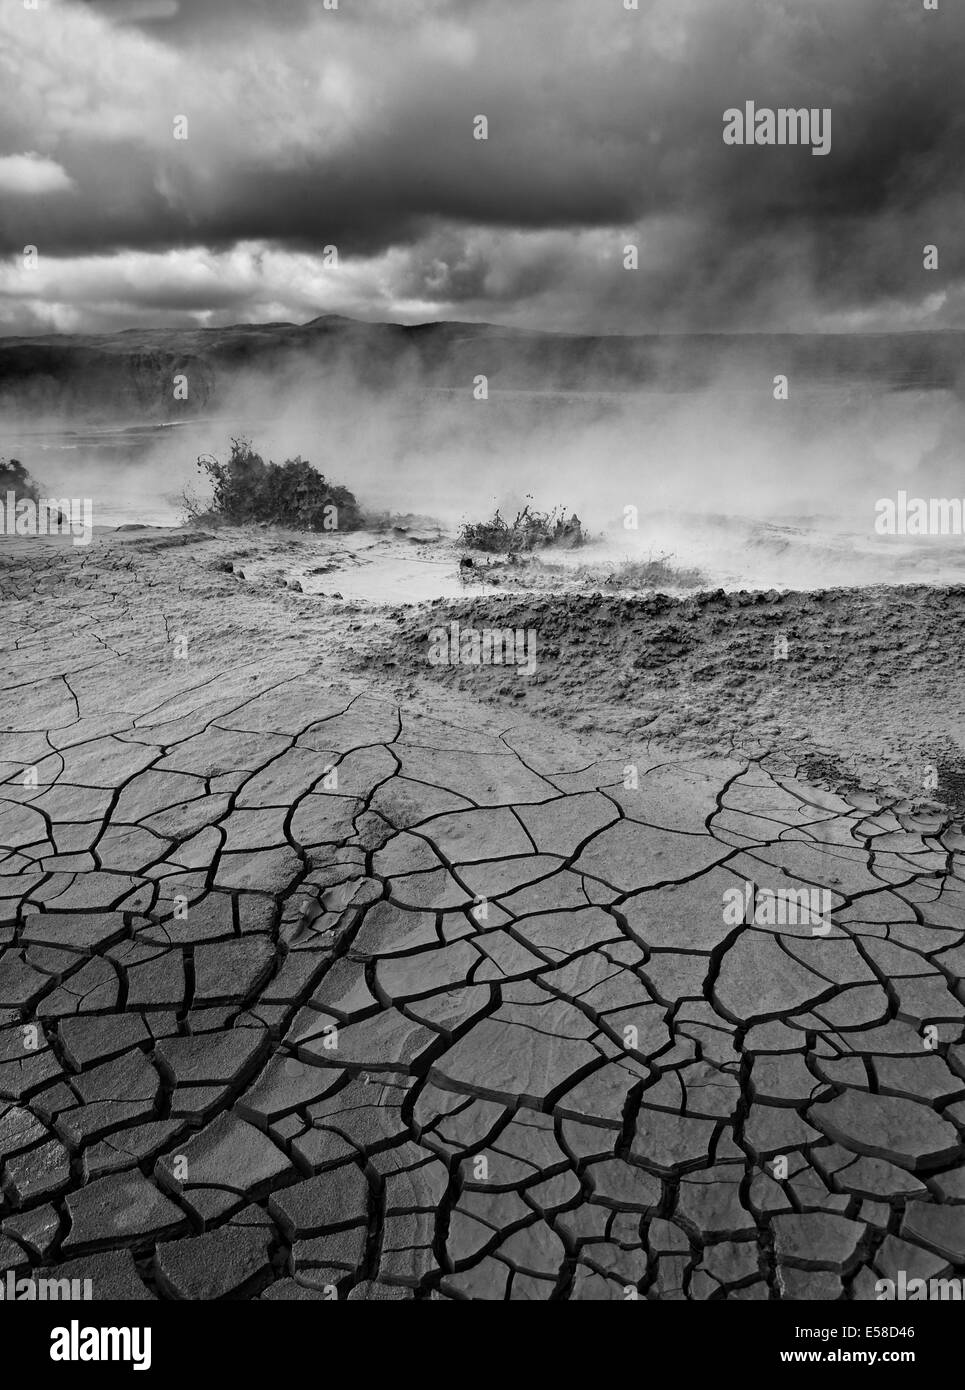 Cracked earth and mud pots, Geothermal hot spring area,  Hveragerdi, Iceland - Stock Image